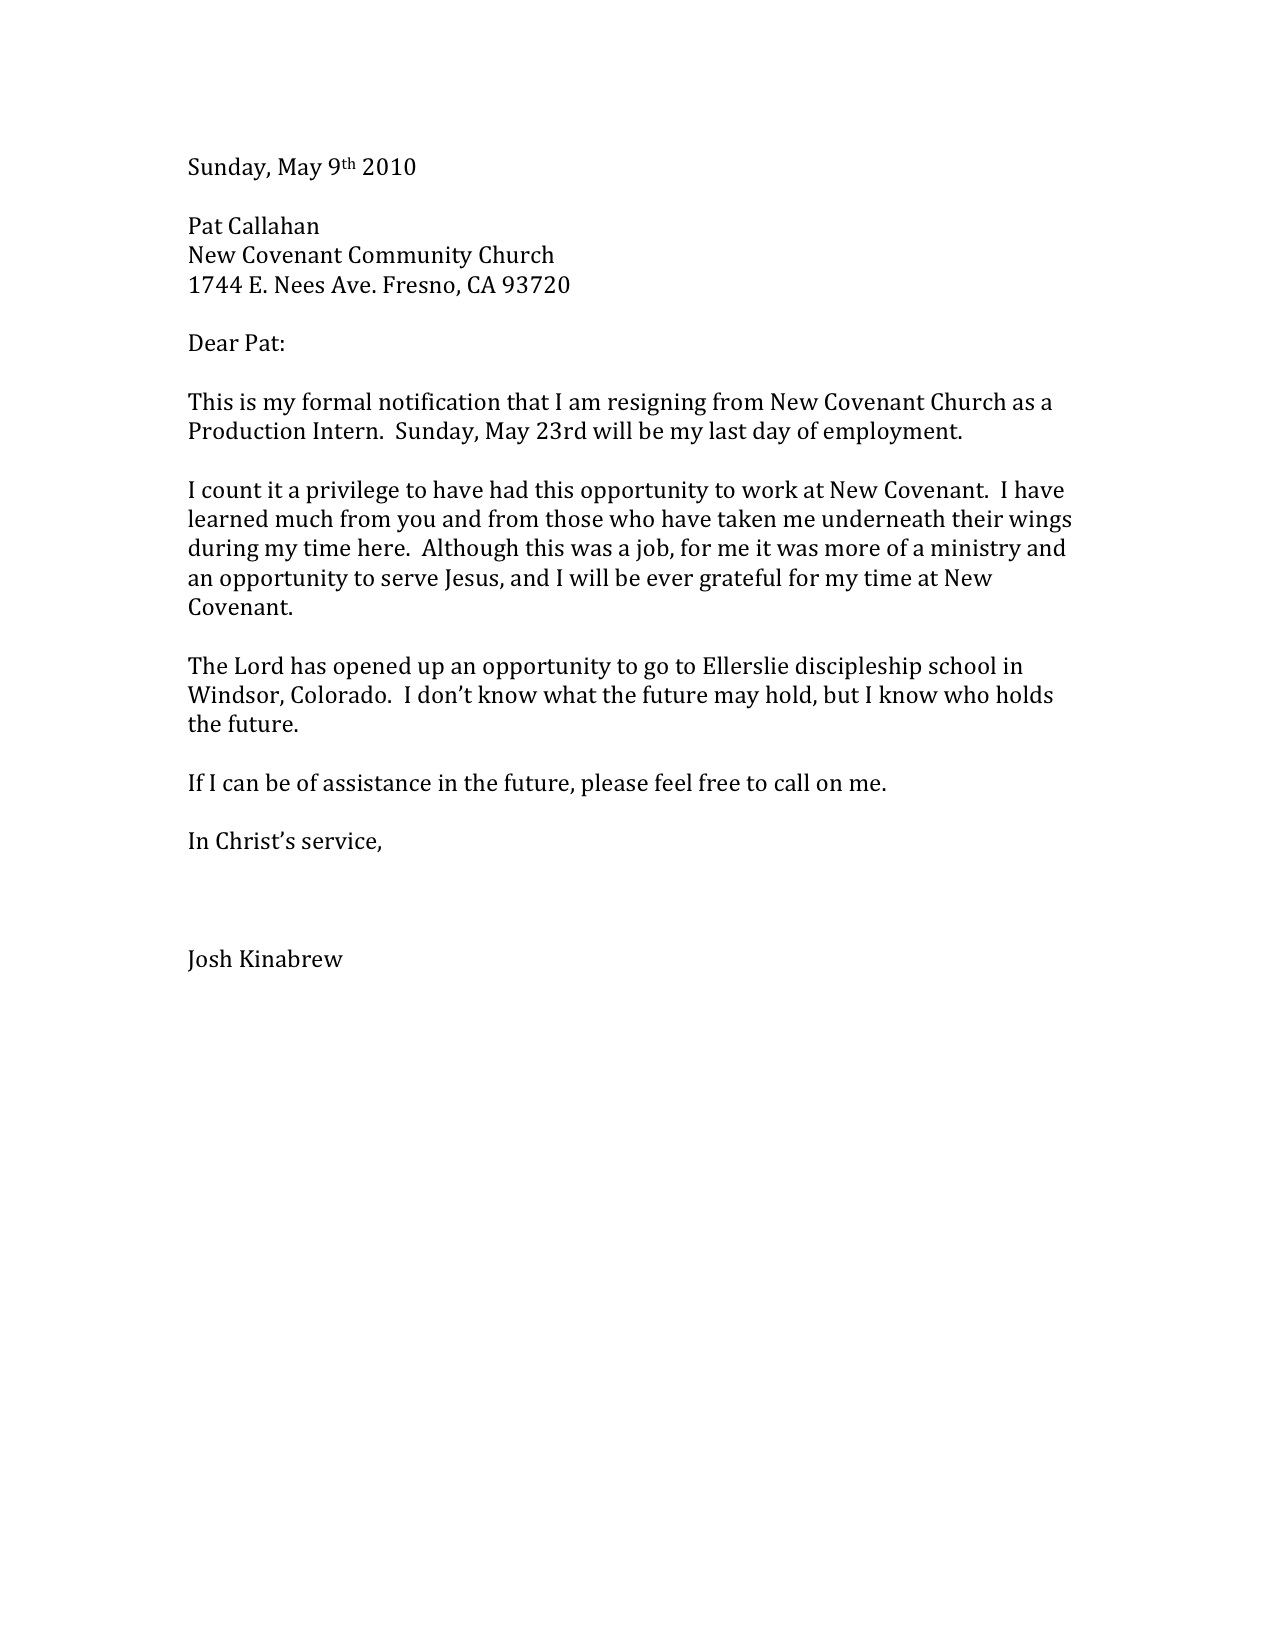 Professional Resignation Letter and Free Letter Of Resignation Template Resignation Letter